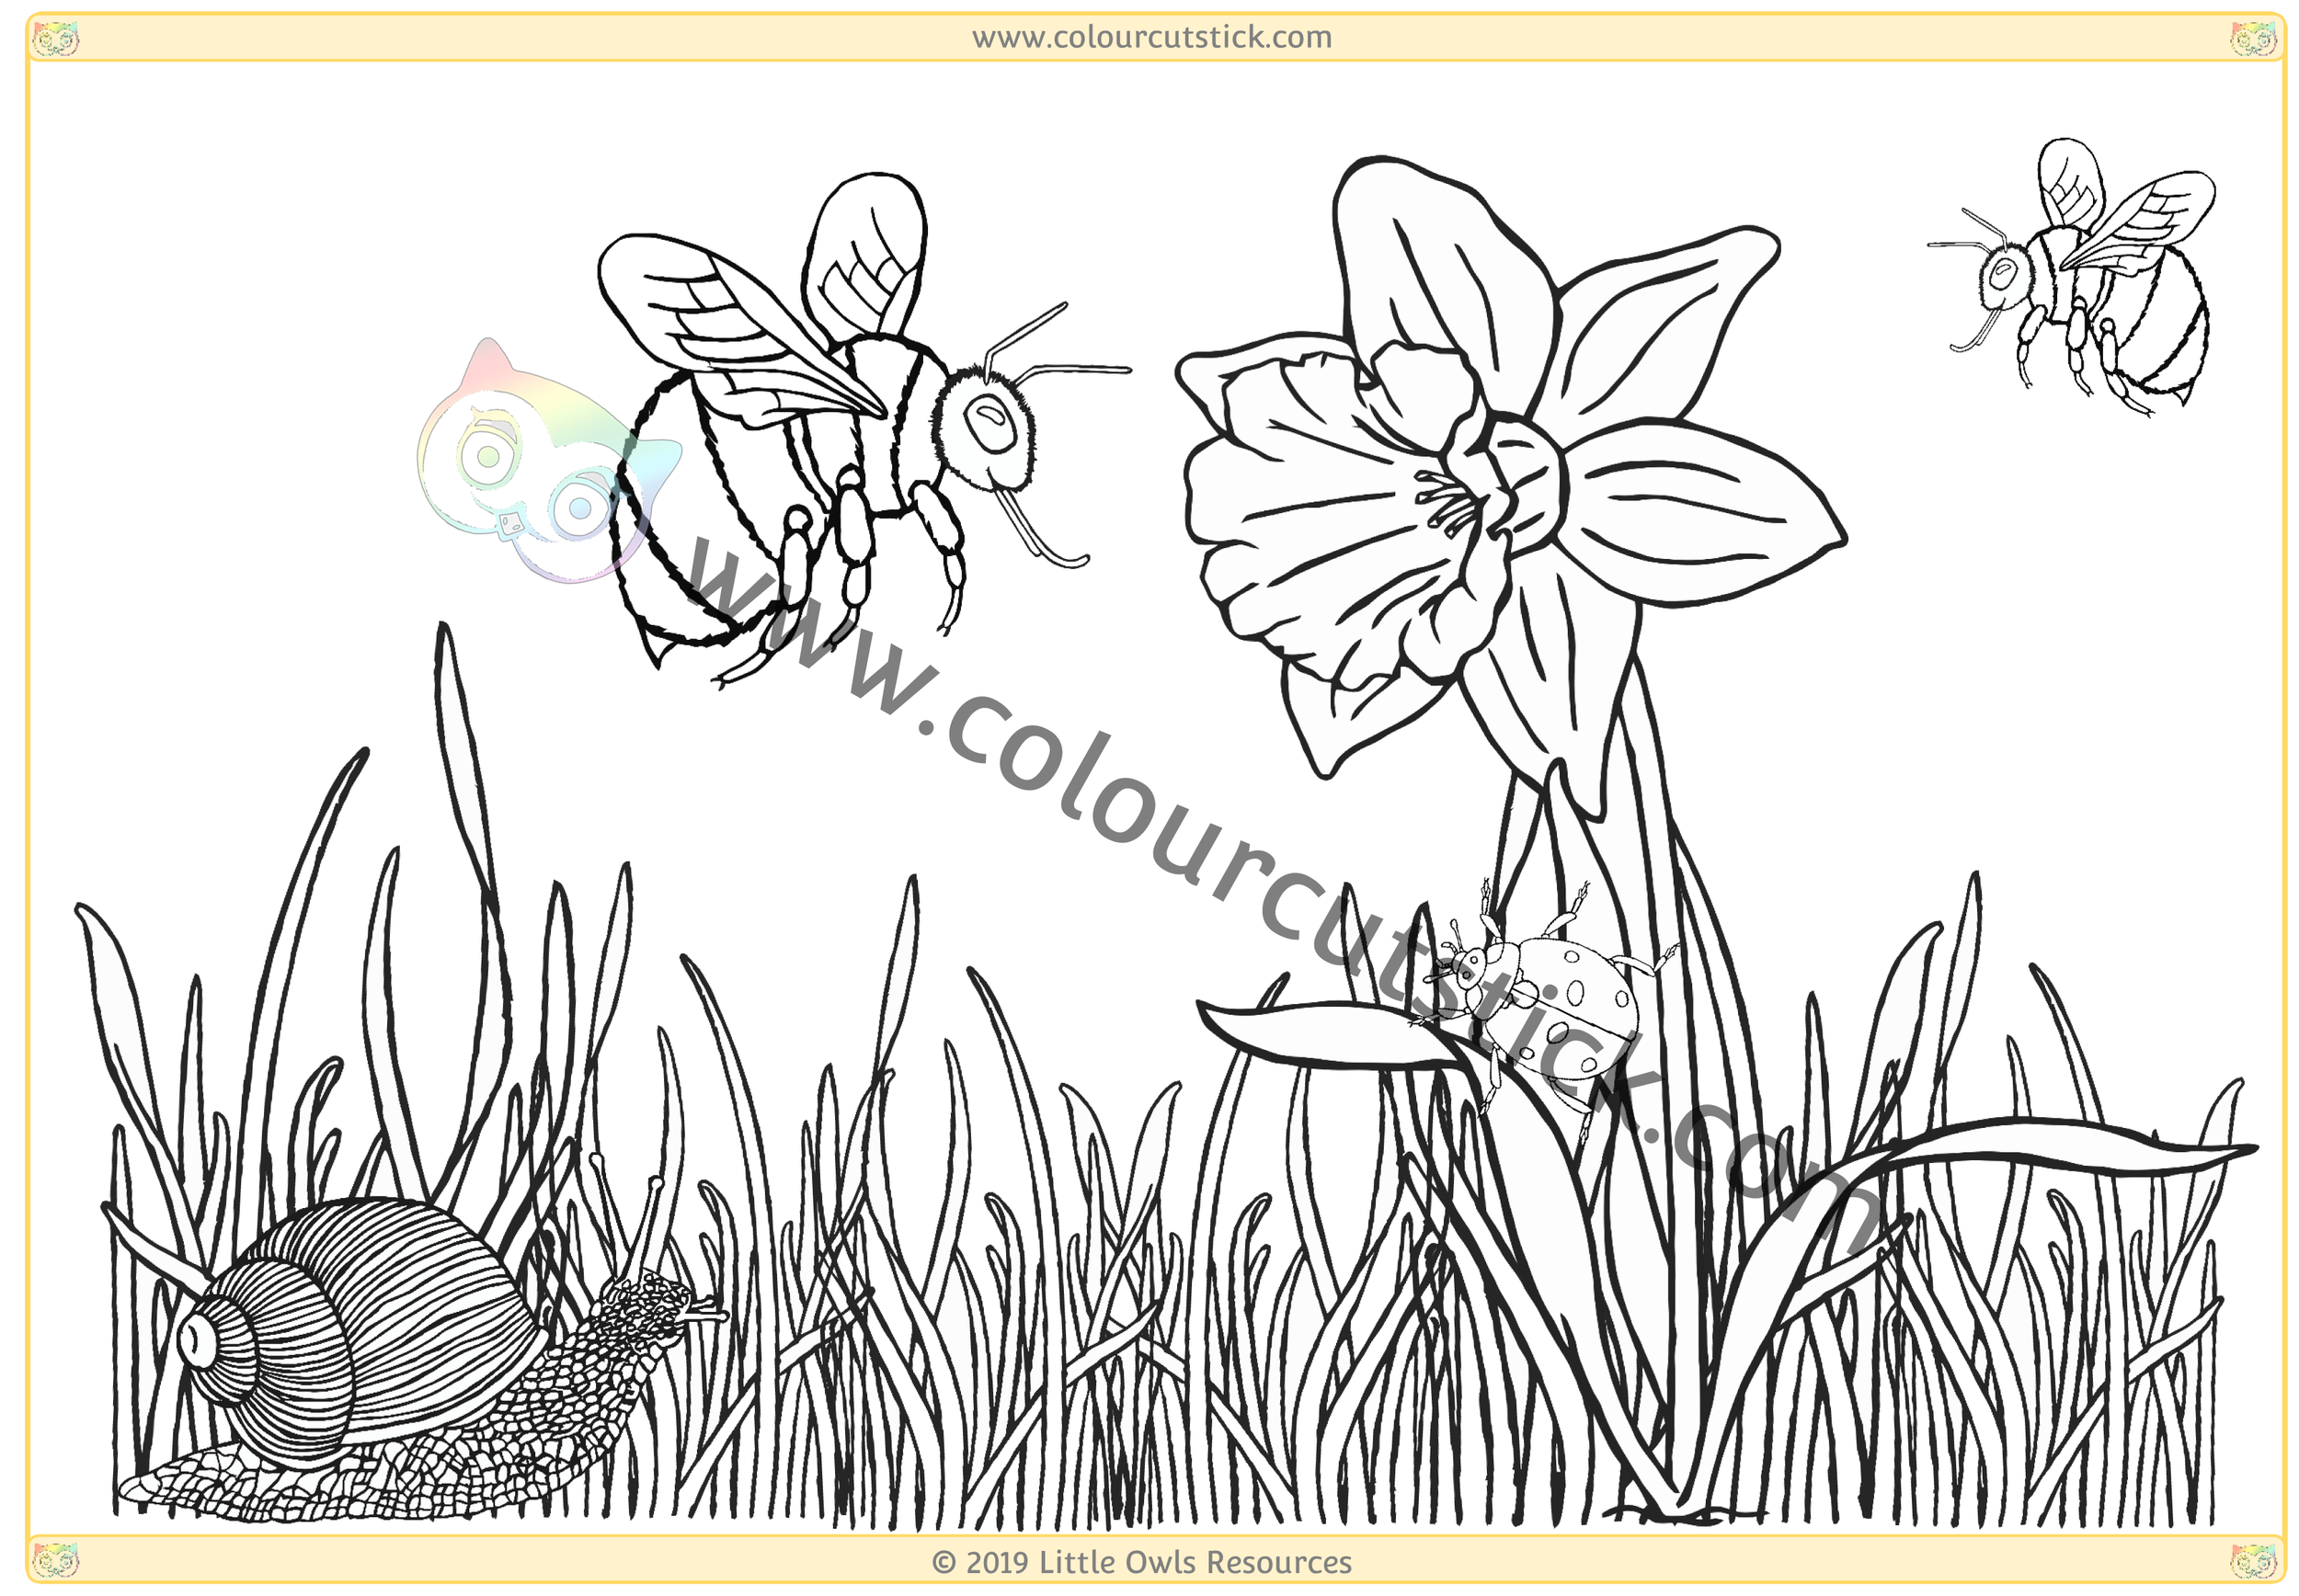 Crayola Mini Coloring Pages - Coloring Home | 694x1000